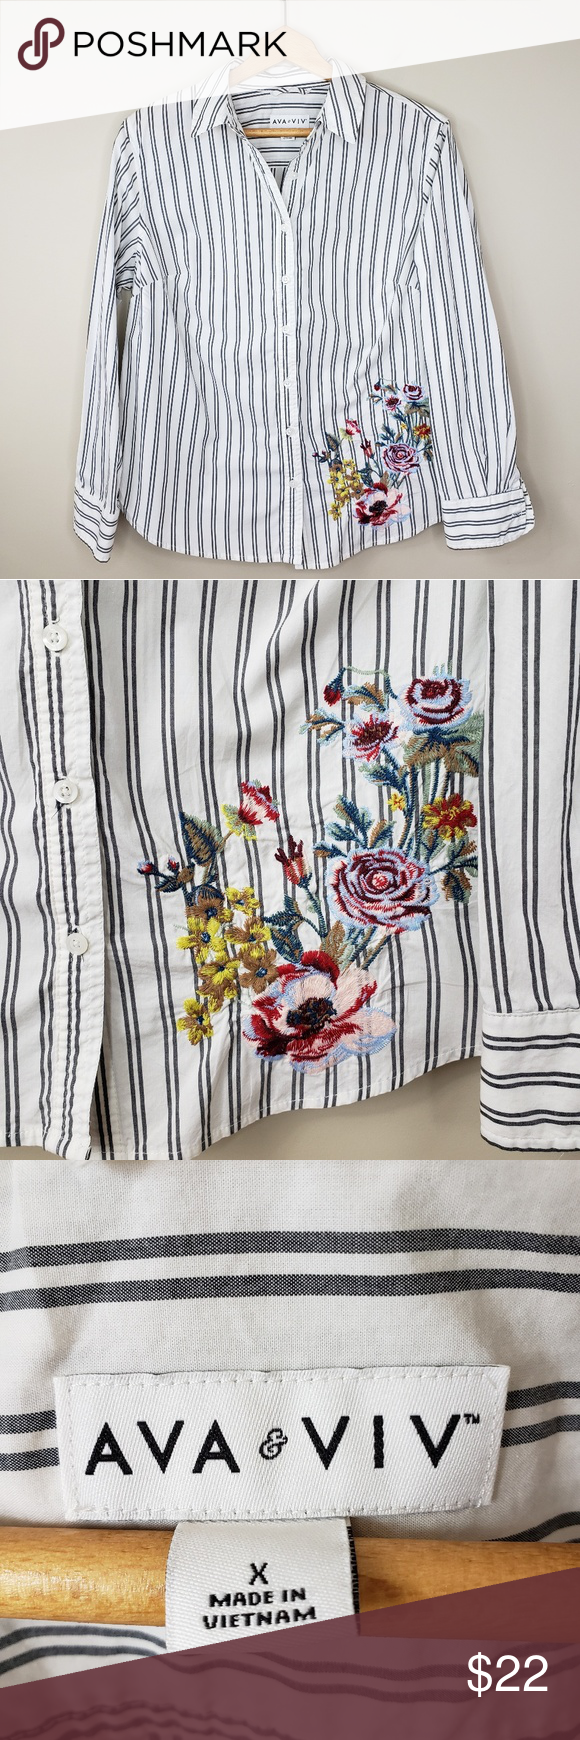 8d1986141696cb Ava & Viv | Floral Embroidered Button Down Shirt Ava & Viv | Floral  Embroidered Button